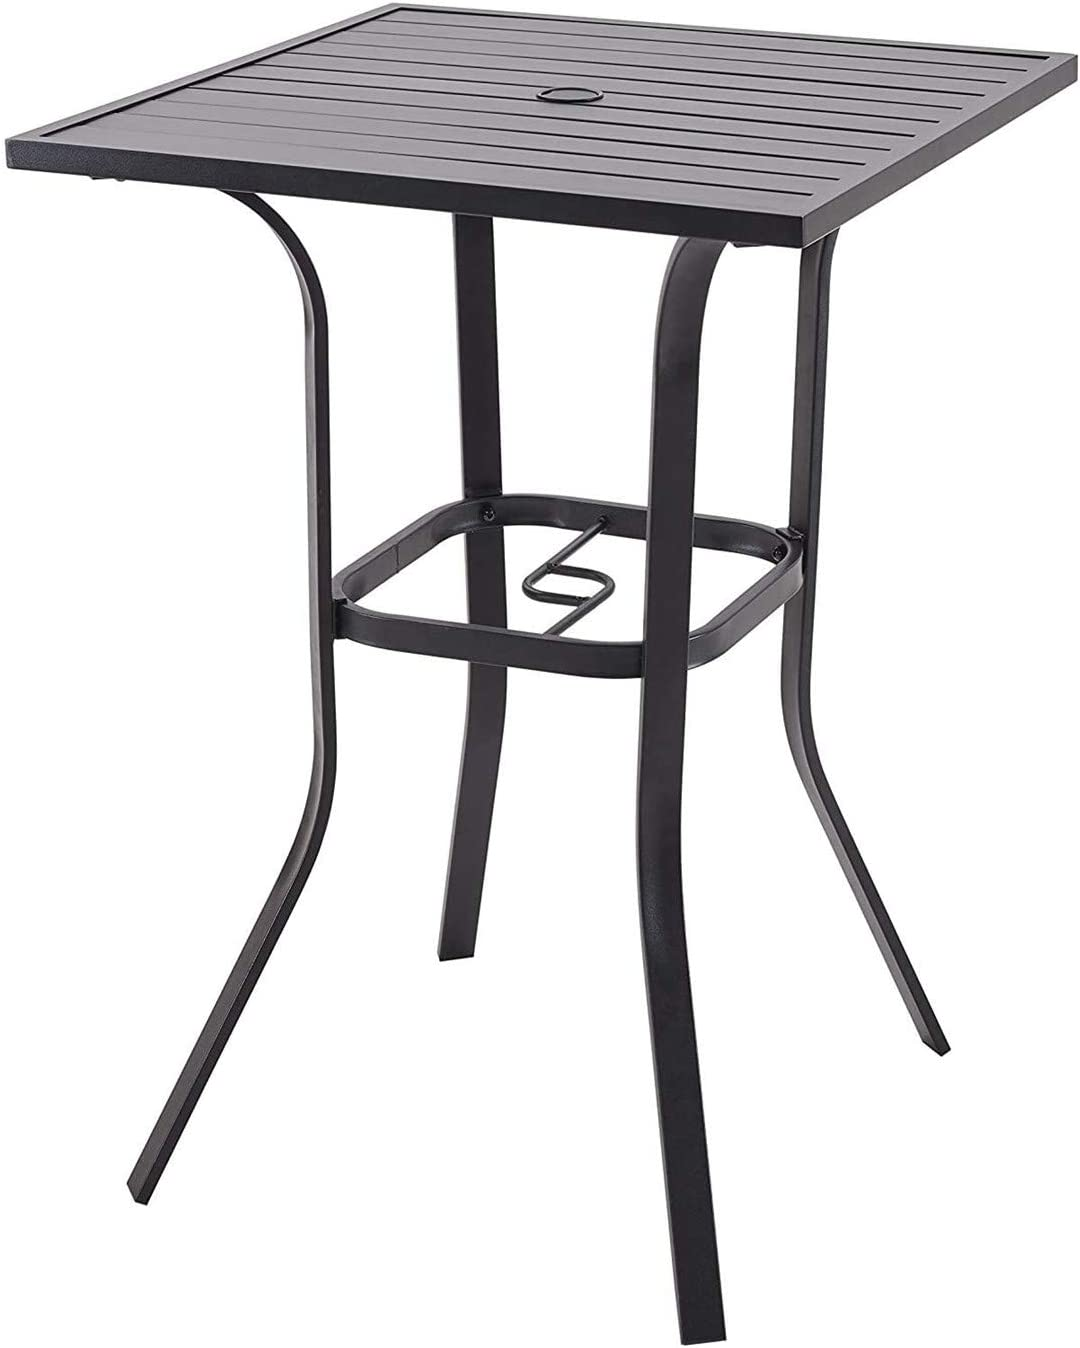 Vicllax Patio Bar Height Bistro Table Outdoor Umbrella Bar Table: Kitchen & Dining